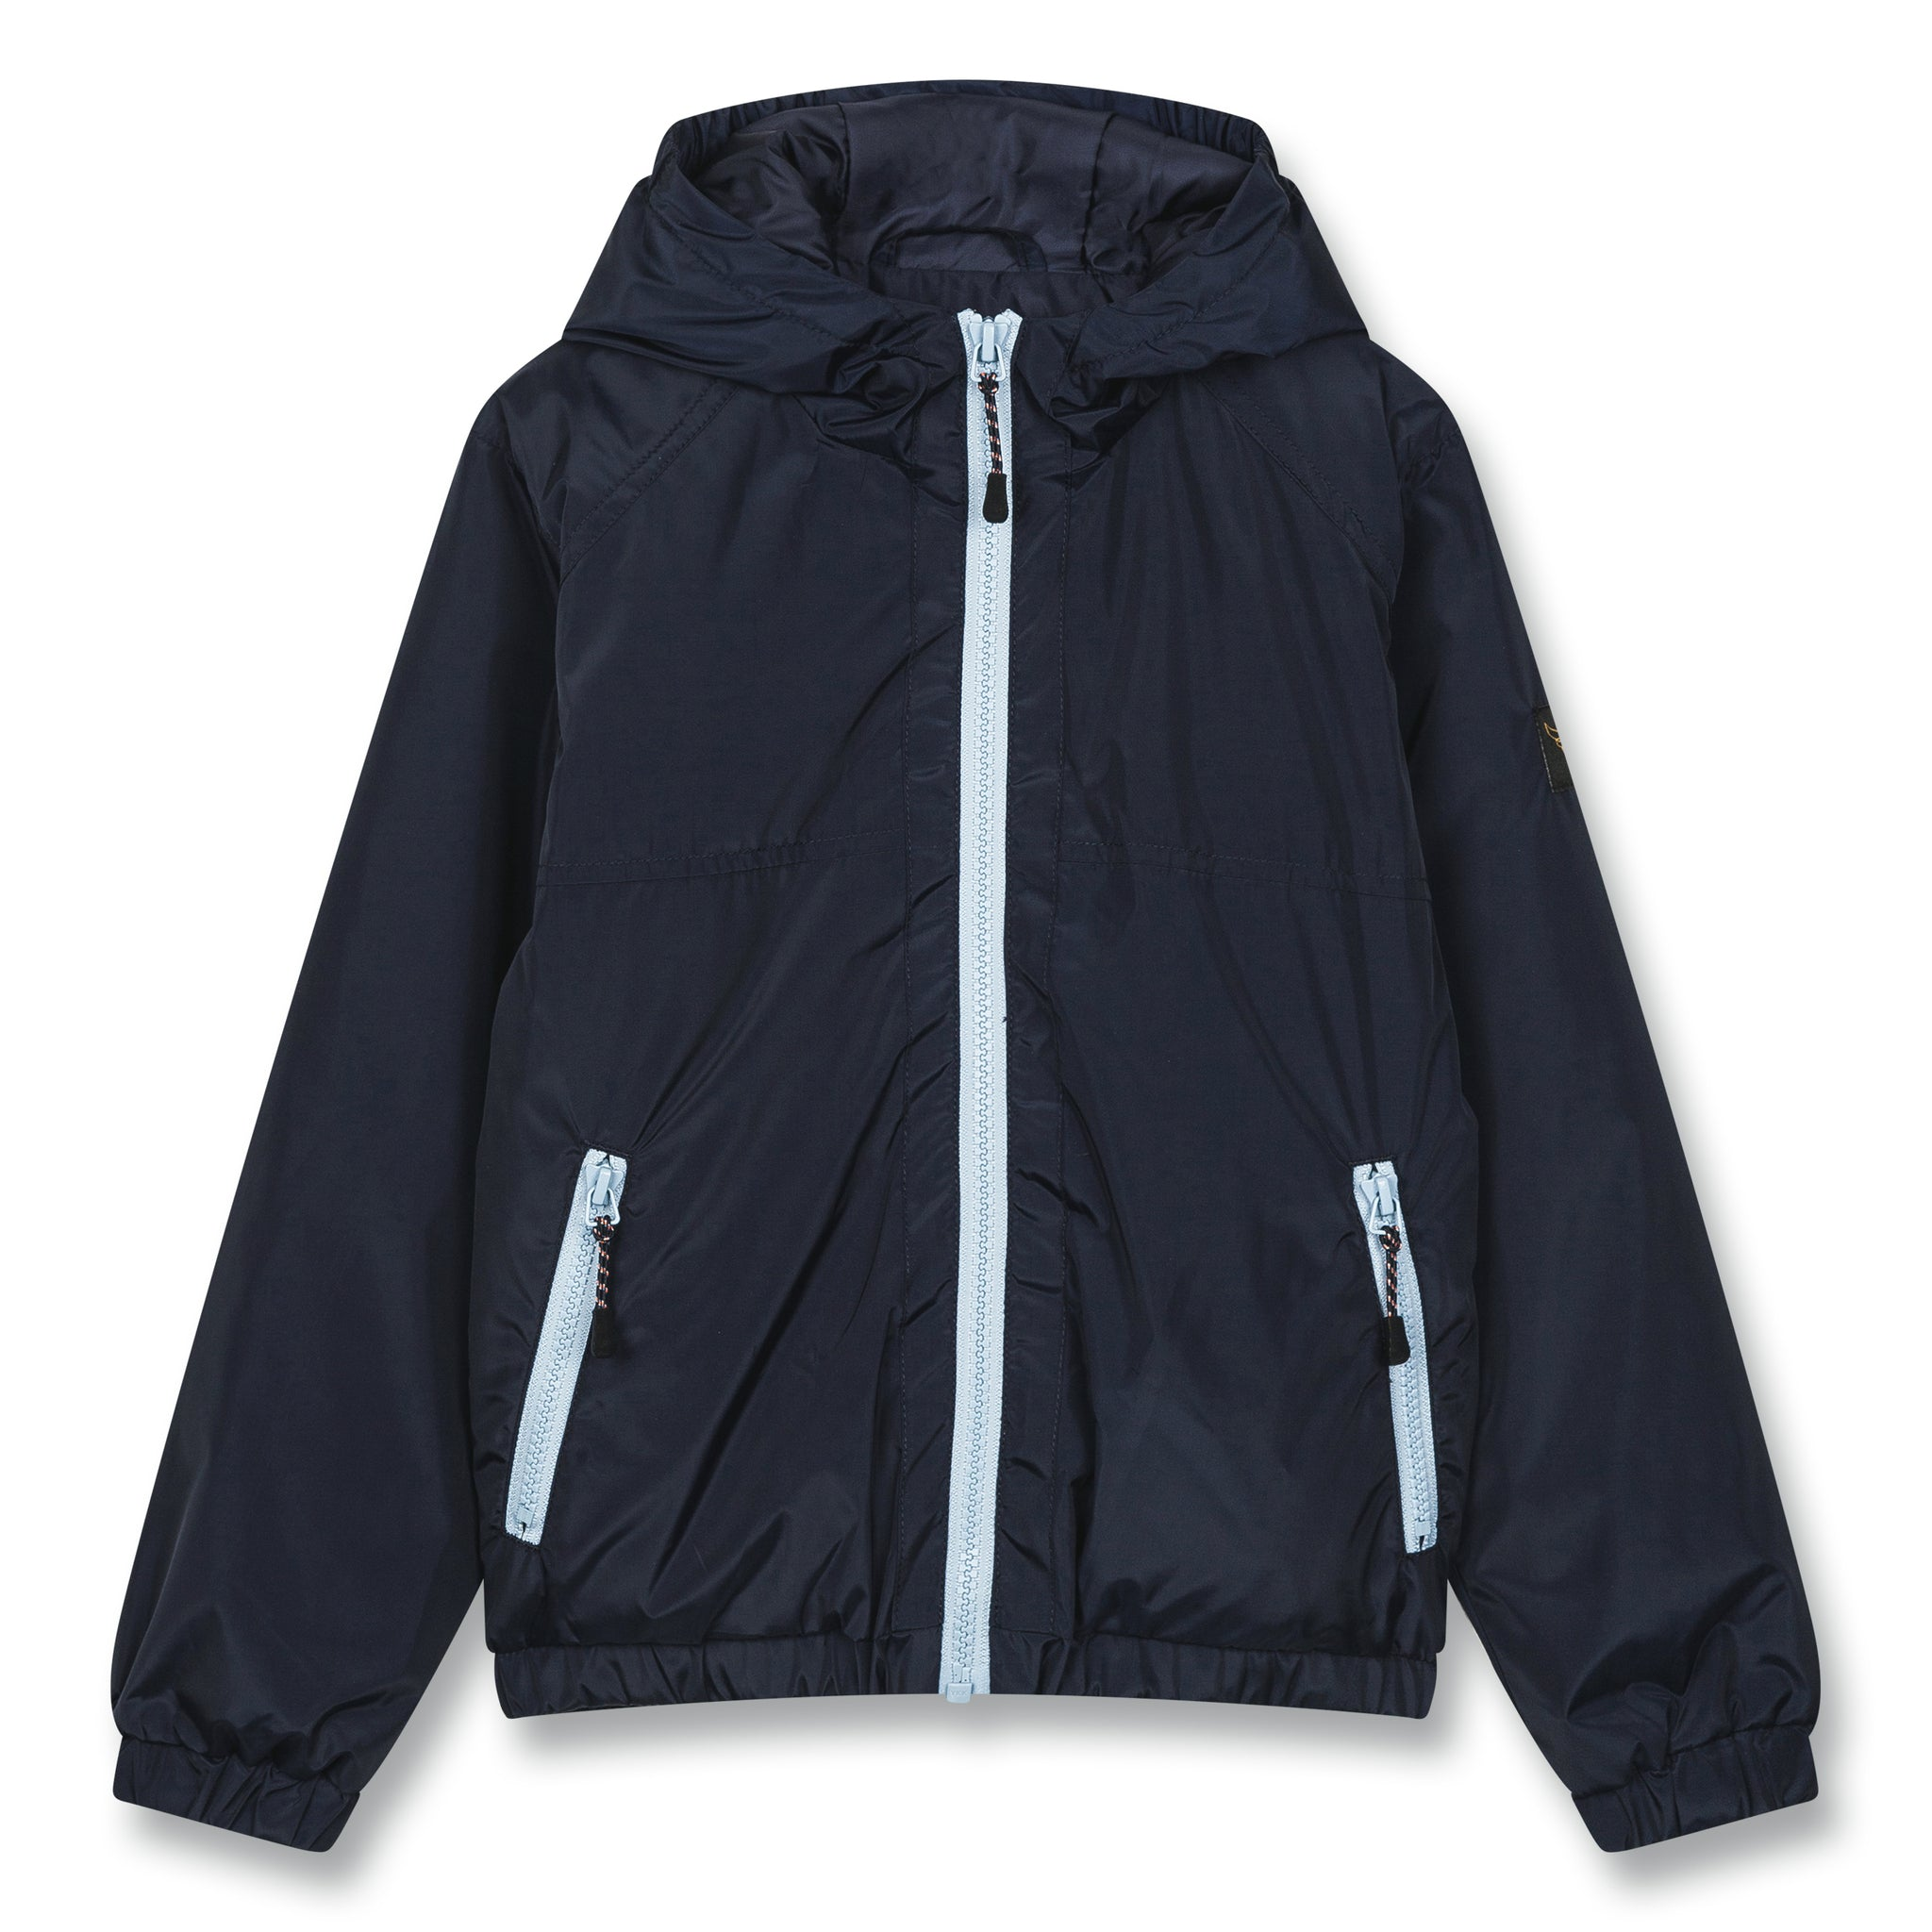 BARKLEY Super Navy - Hooded Windbreaker 1